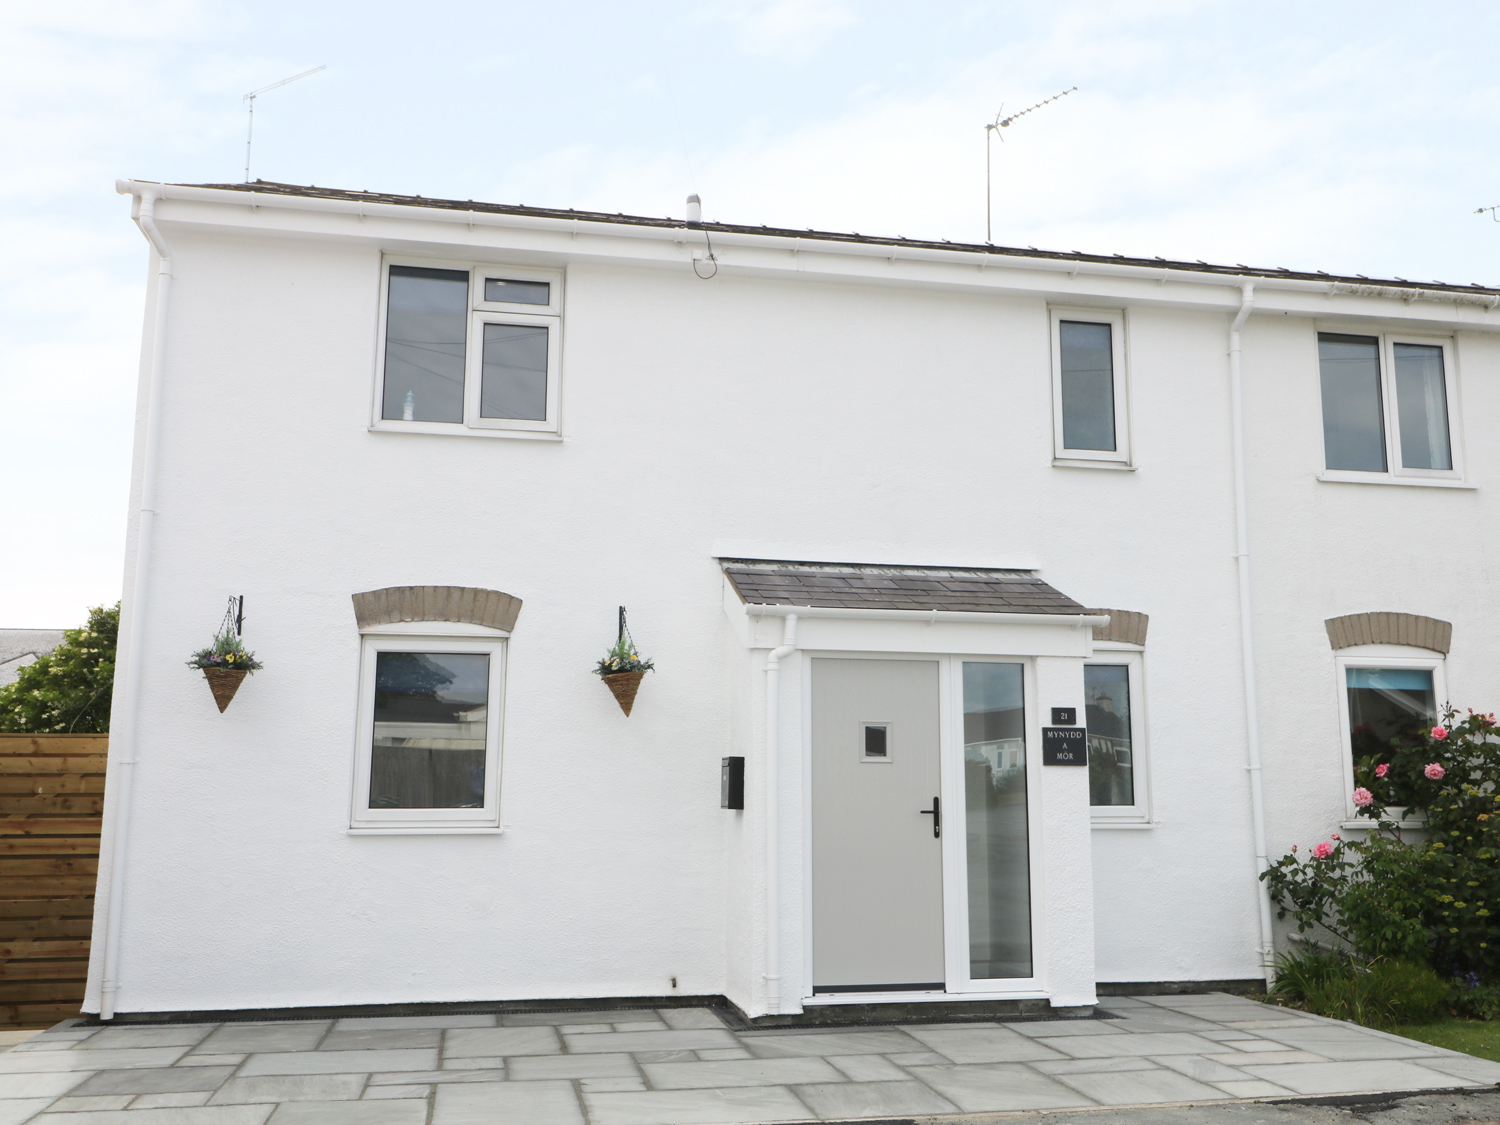 4 bedroom Cottage for rent in Morfa Nefyn